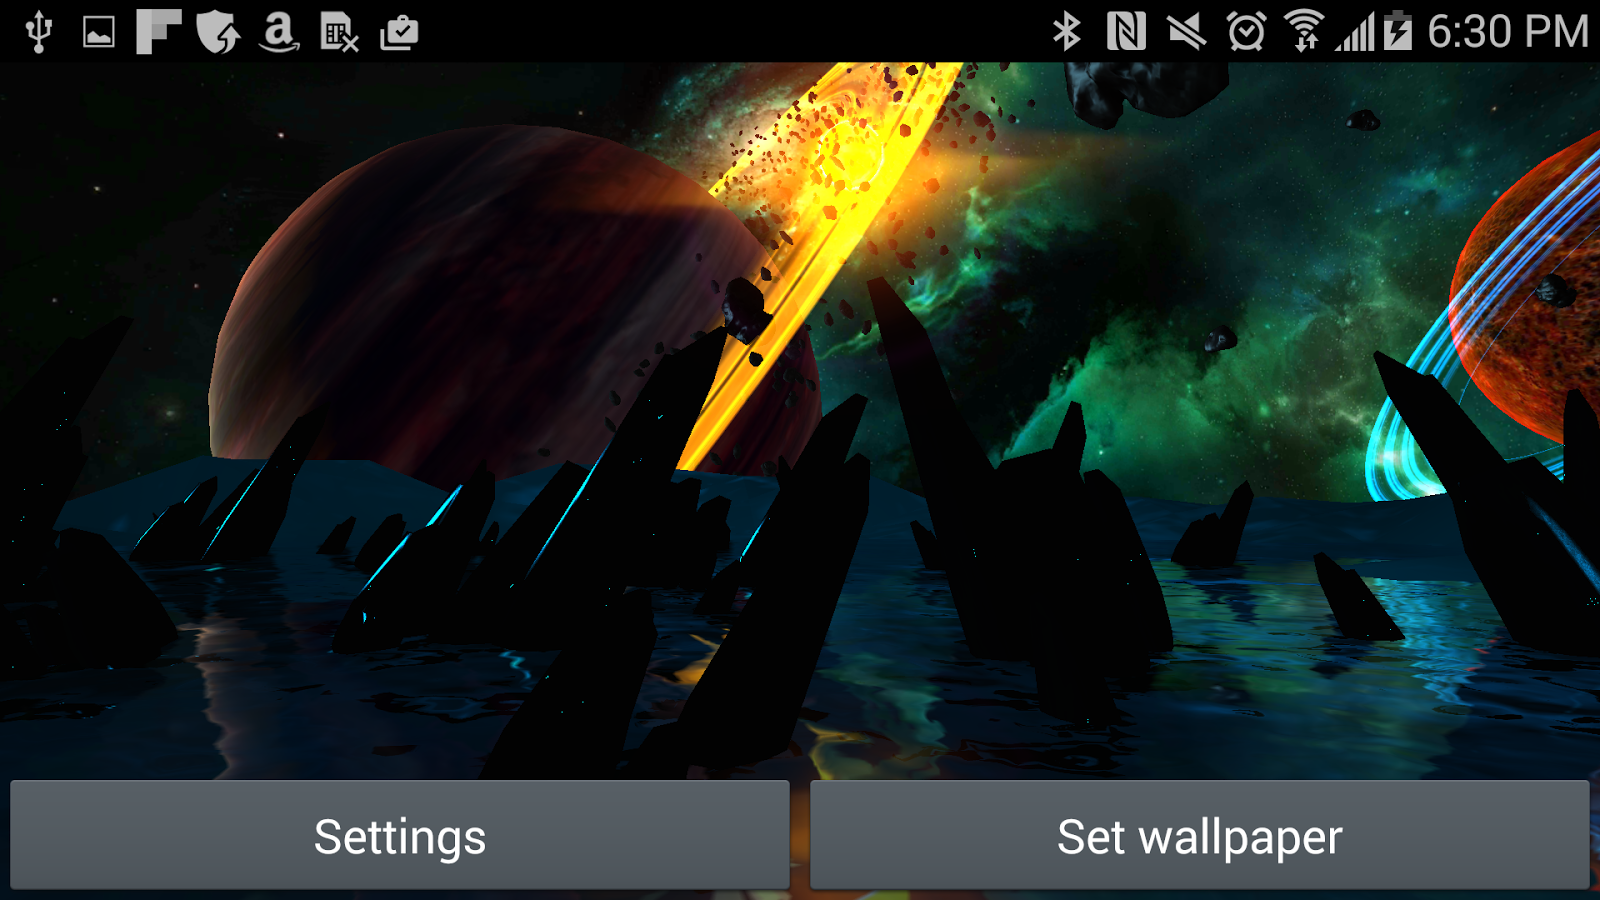 Far Galaxy 3D Live Wallpaper Screenshot 8